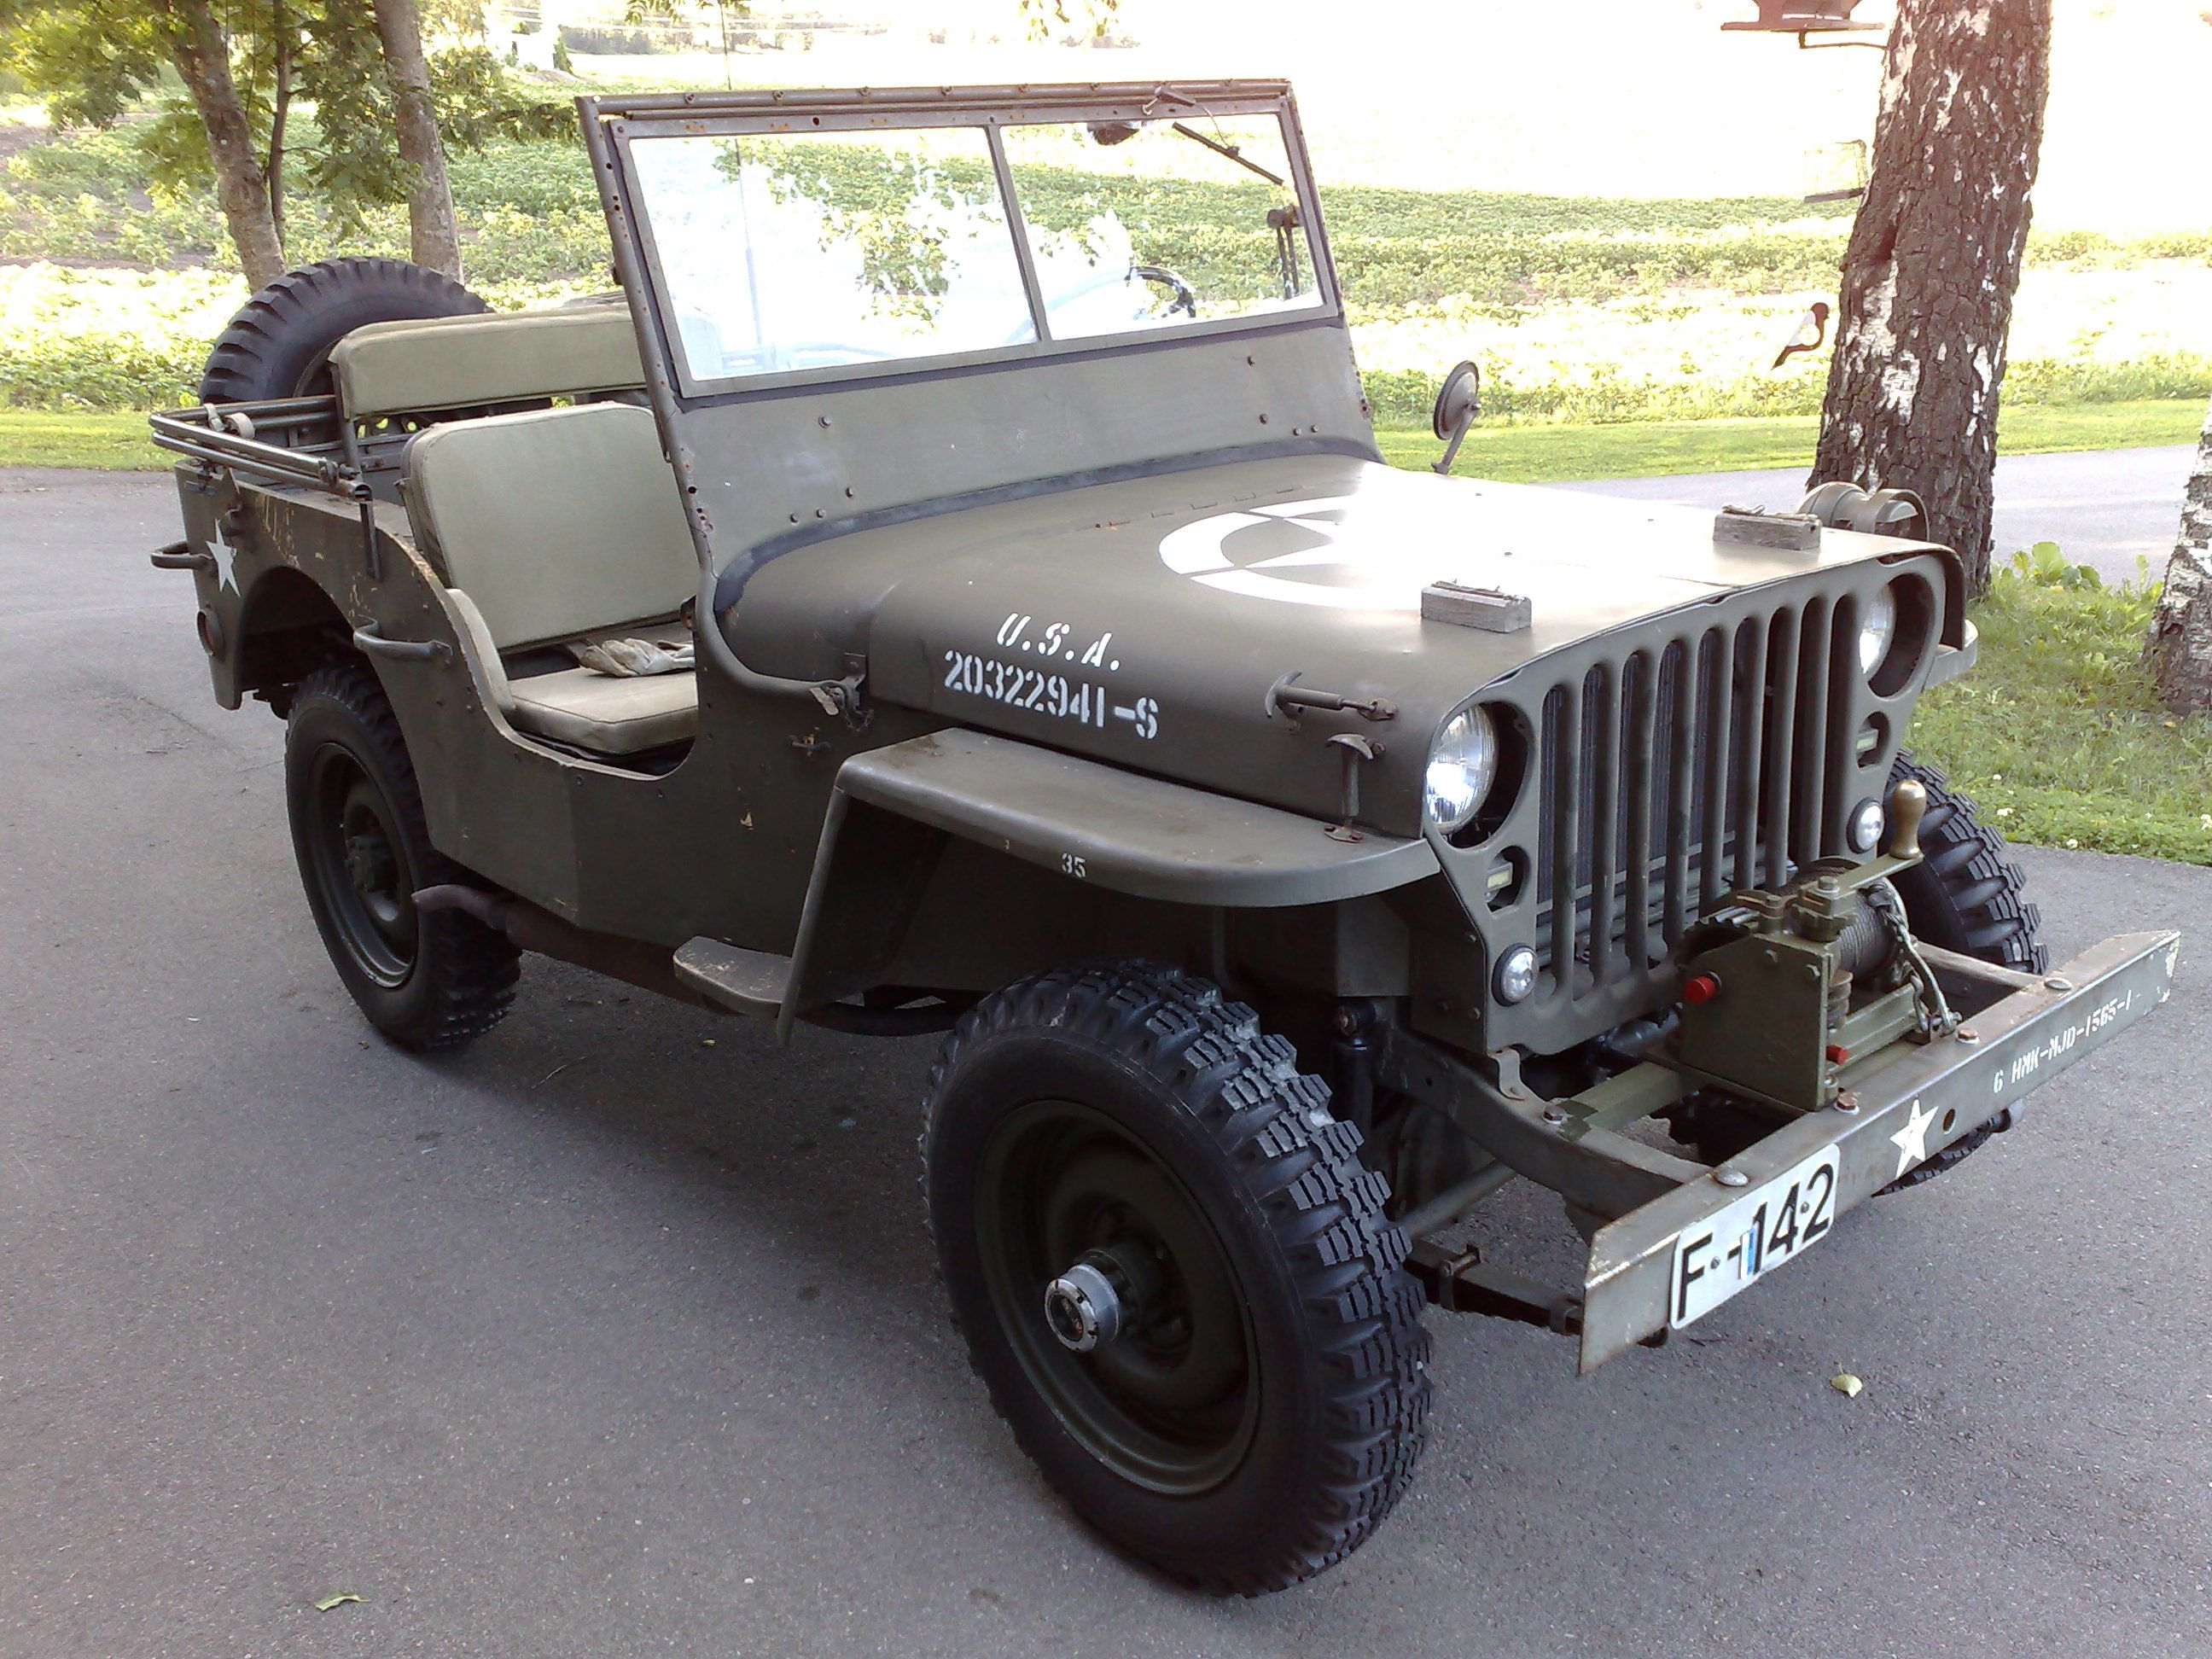 willys stn jeep classics willy cg cars india vintage bhp page forum pink team wagon